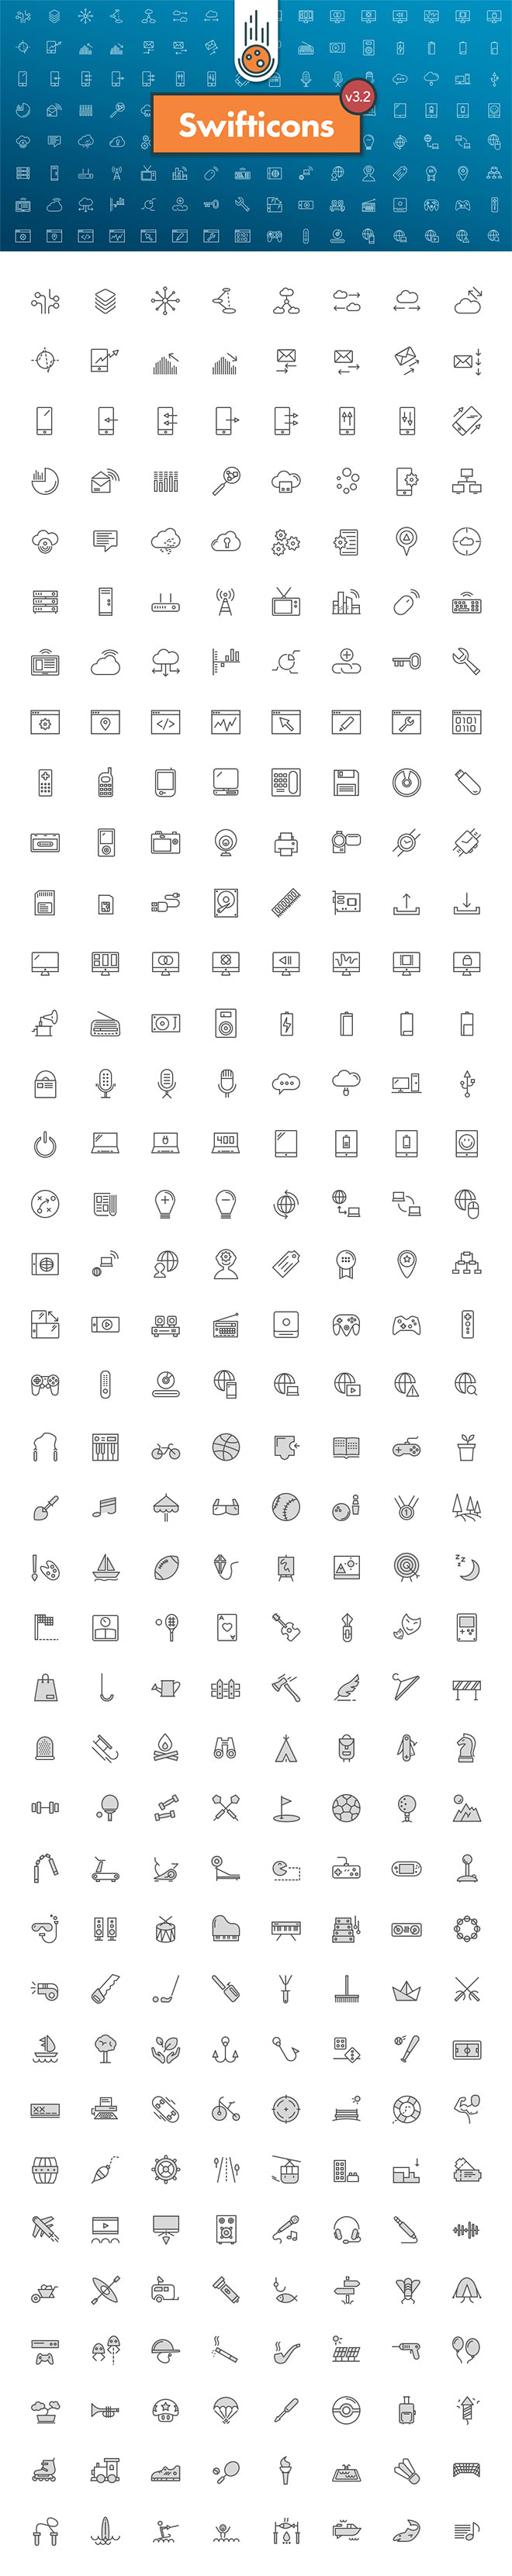 300 Free Tech & Activities Icons from Swifticons